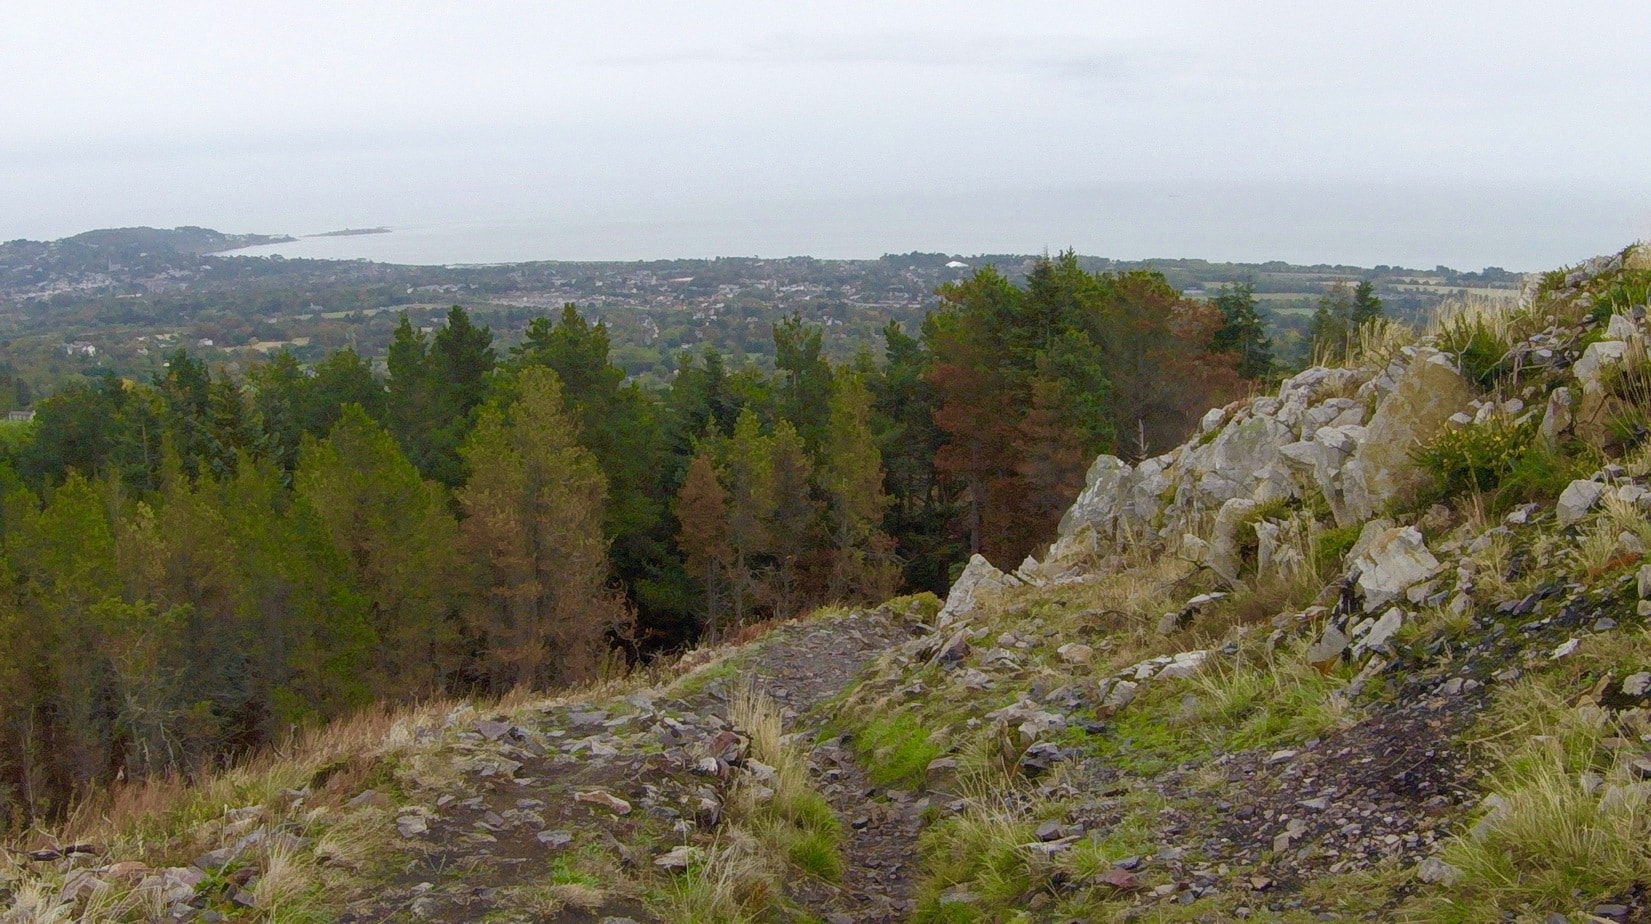 Views across Dublin Bay from Wicklow Mountains